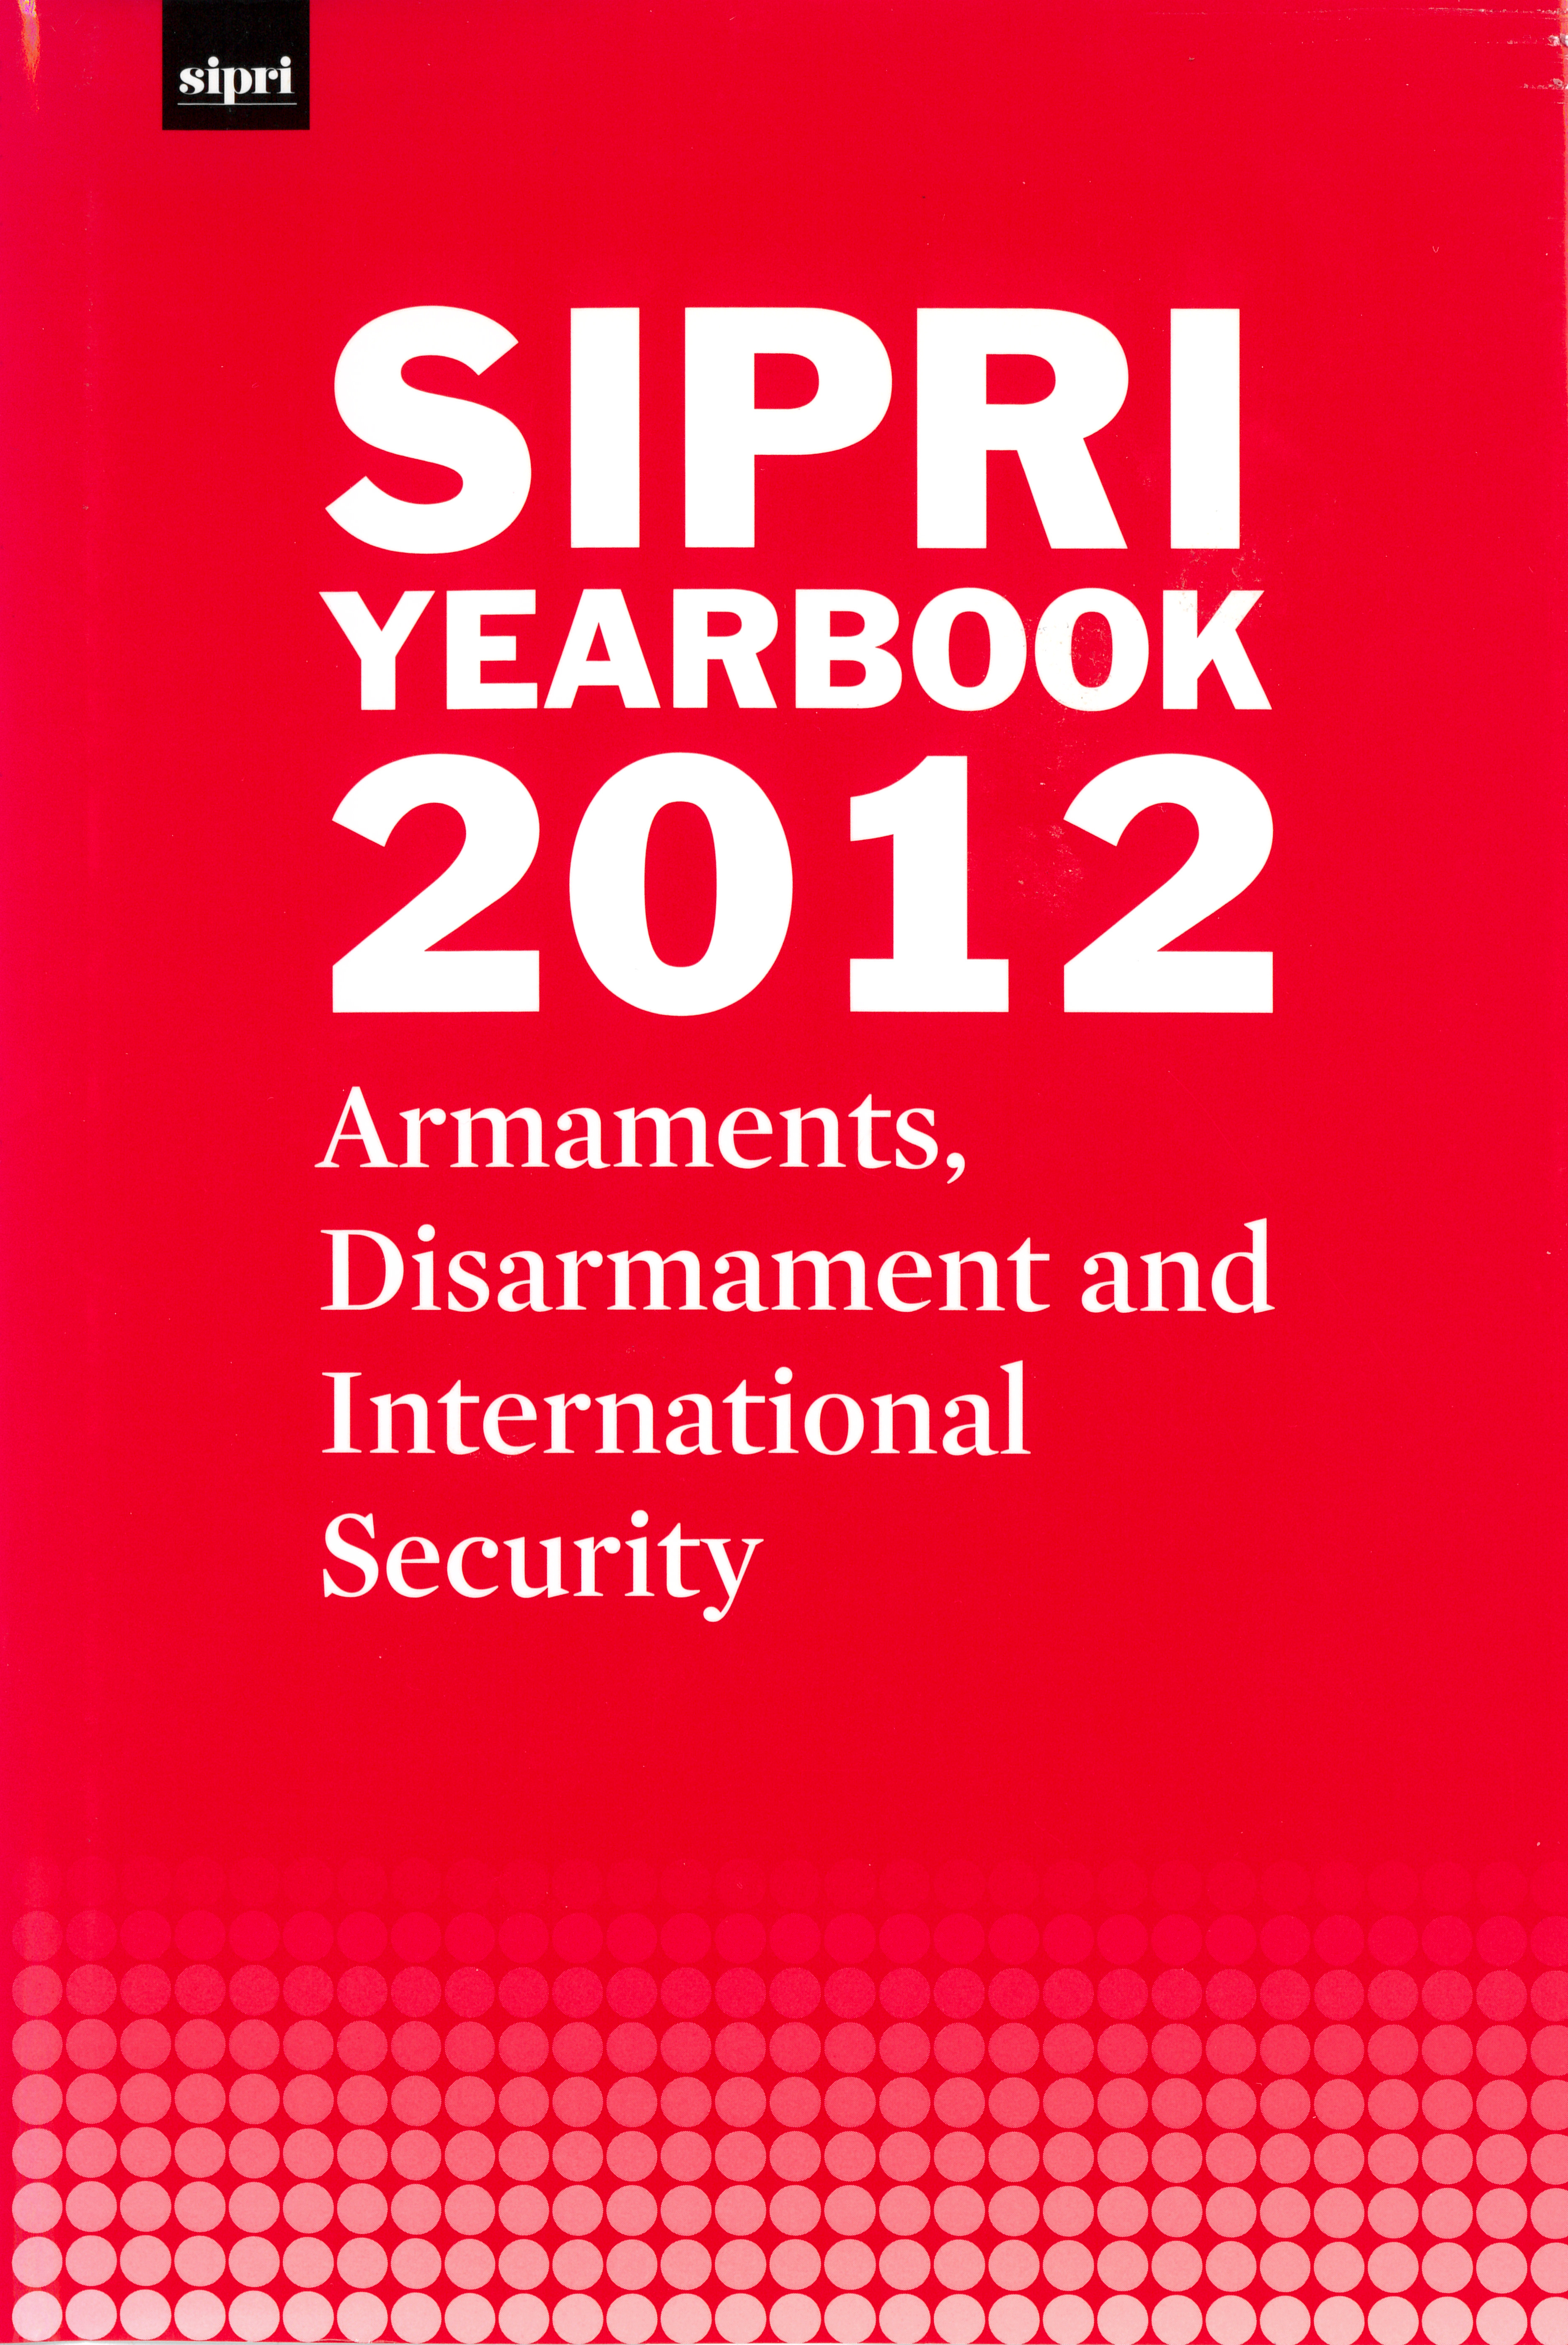 SIPRI yearbook 2012 cover